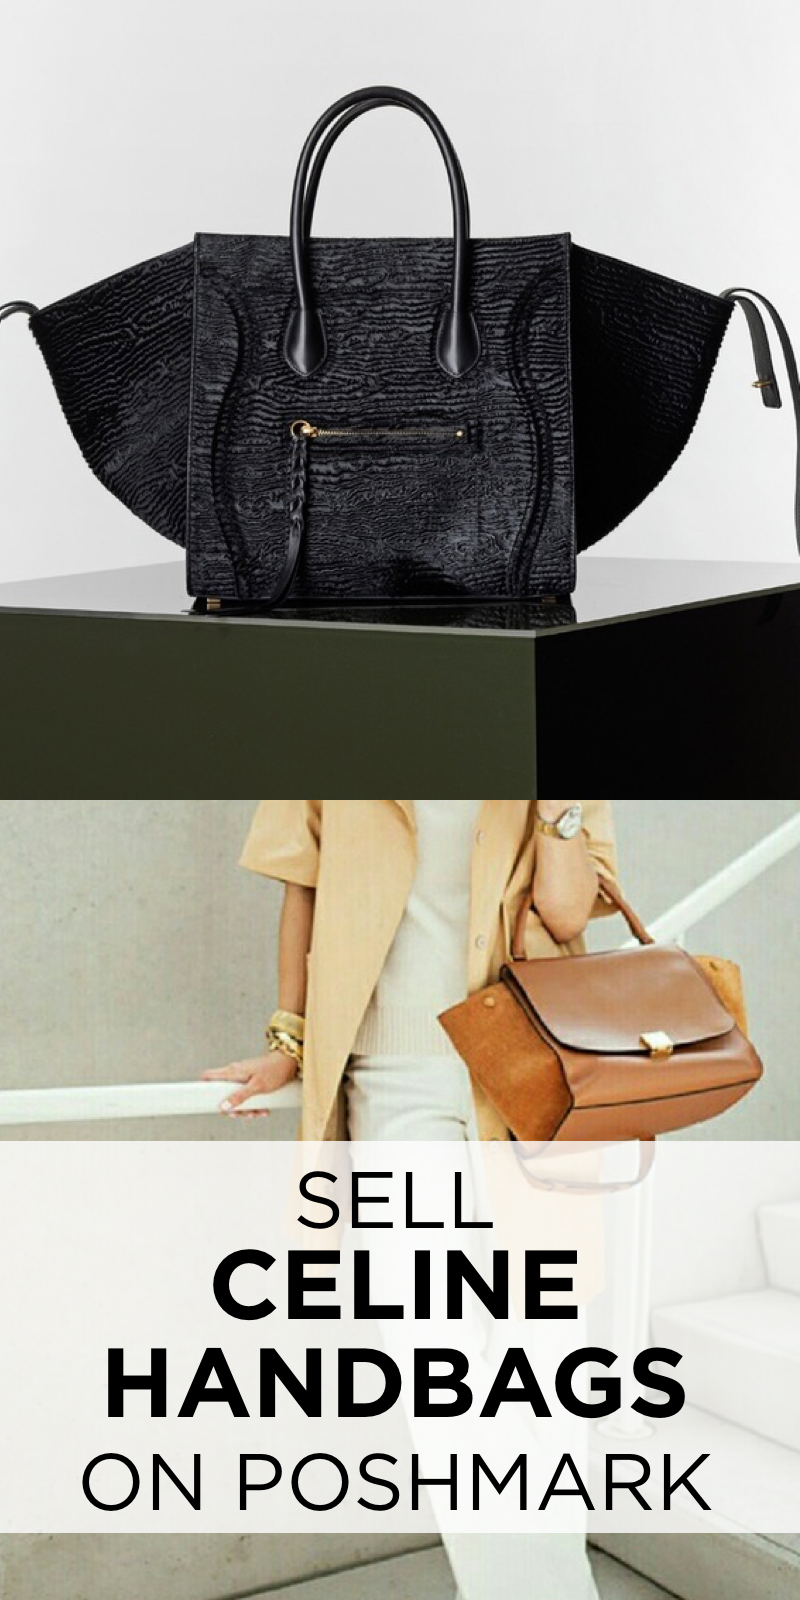 List an Item or Make an Offer! Buy and Sell CELINE handbags at Poshmark! Install for FREE now! Shipping is also fast and easy for sellers and buyers!